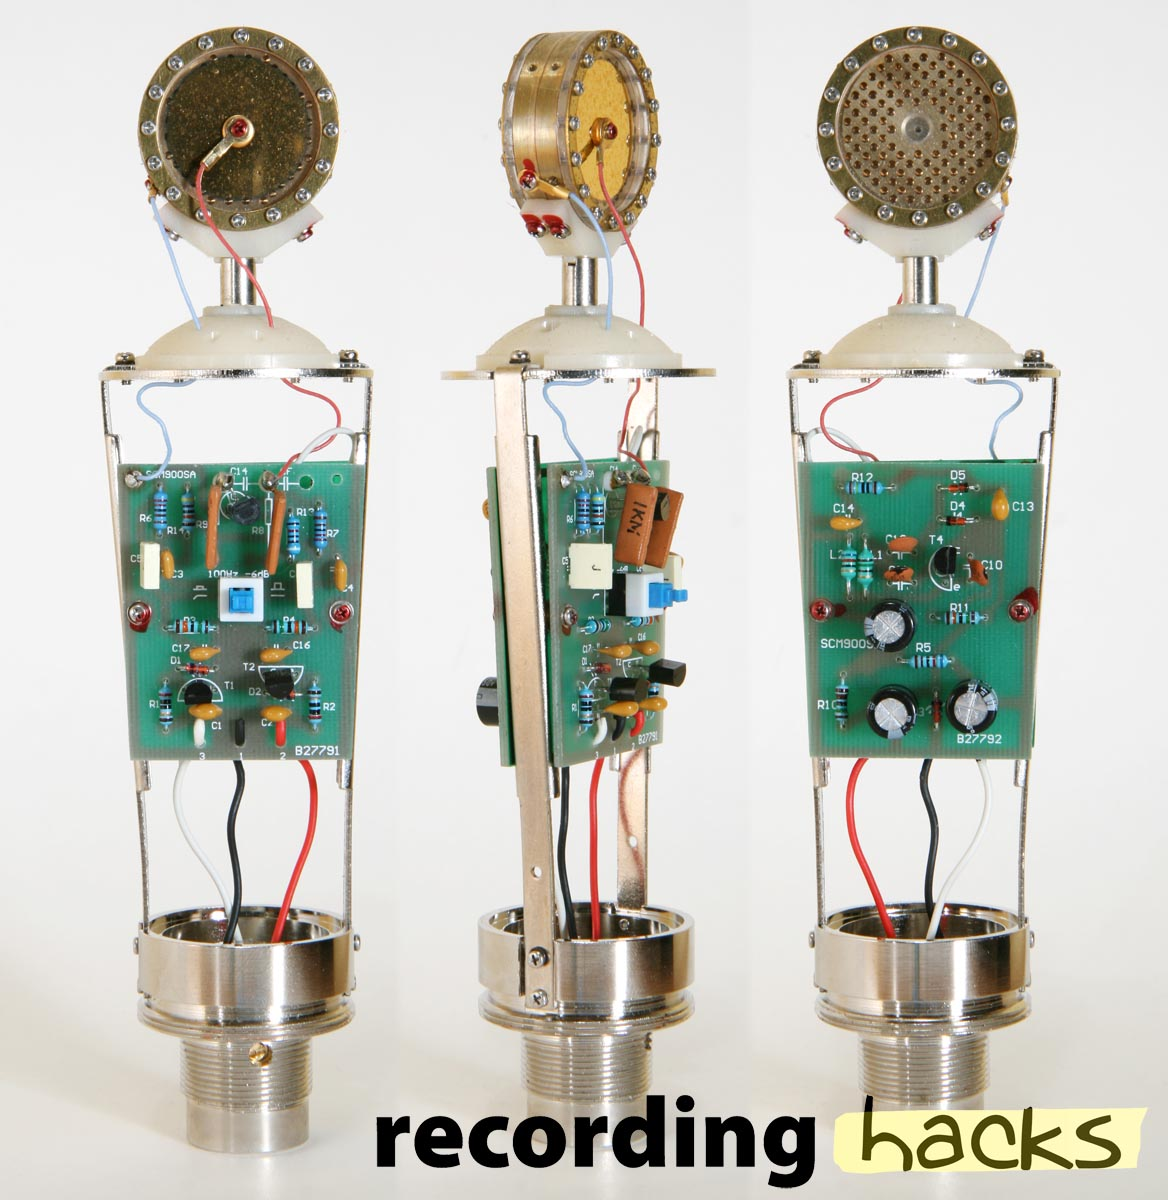 the best mic mod platform recording hacks the circuit board set found in the gxl 2200 turns up in a number of other mics that are equally modifiable if the 2200 isn t doing it for you for whatever